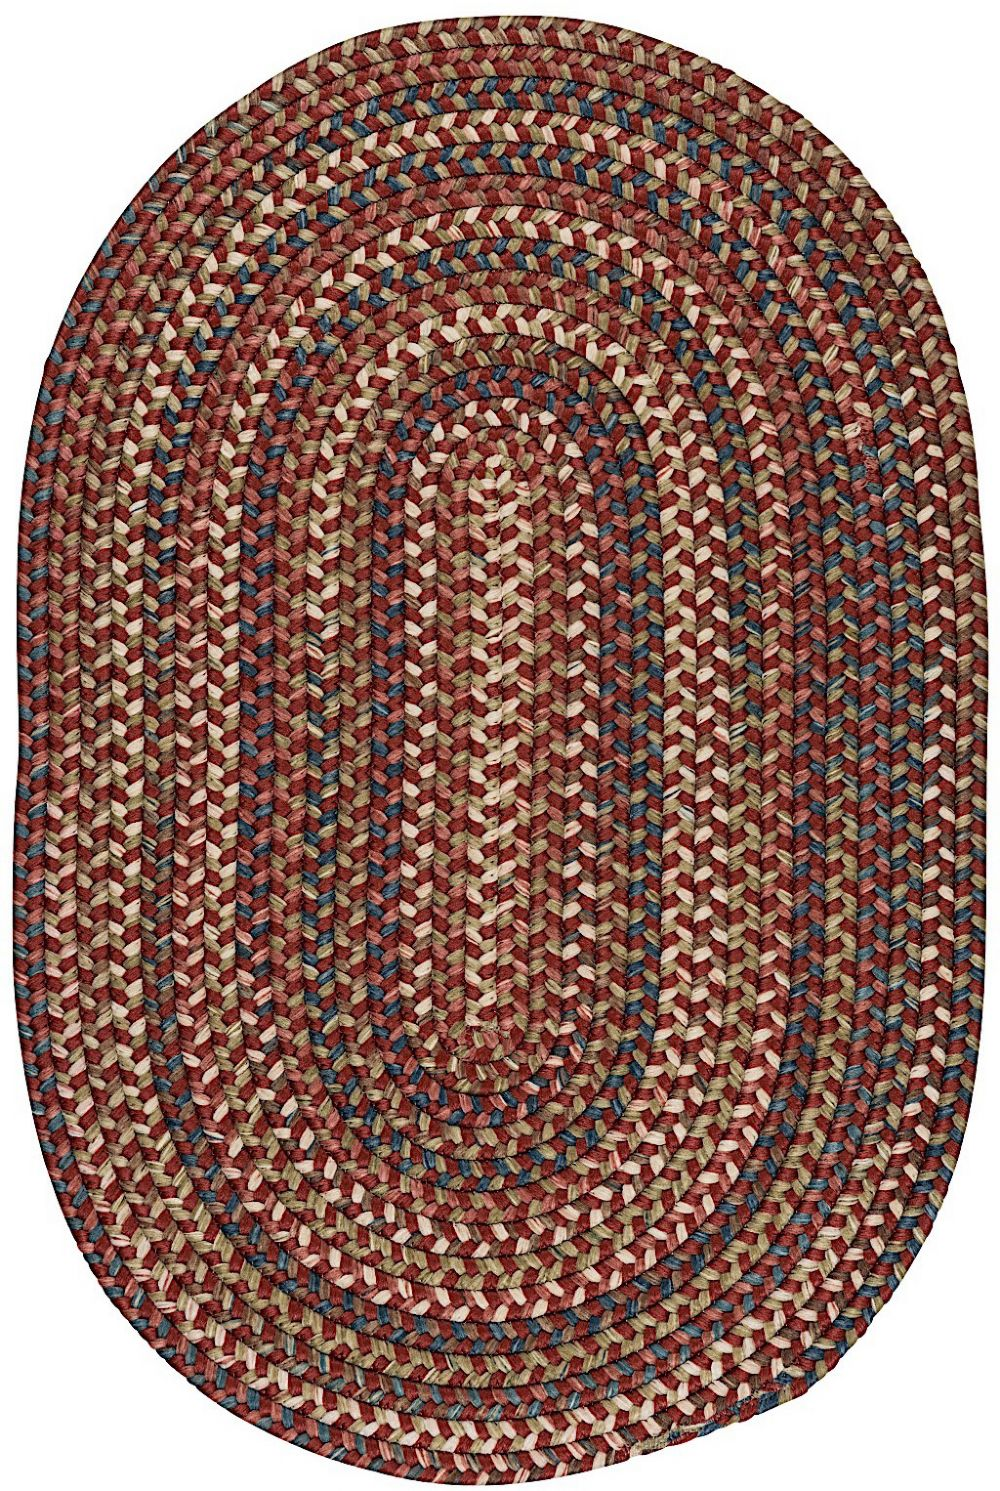 colonial mills cedar cove braided area rug collection